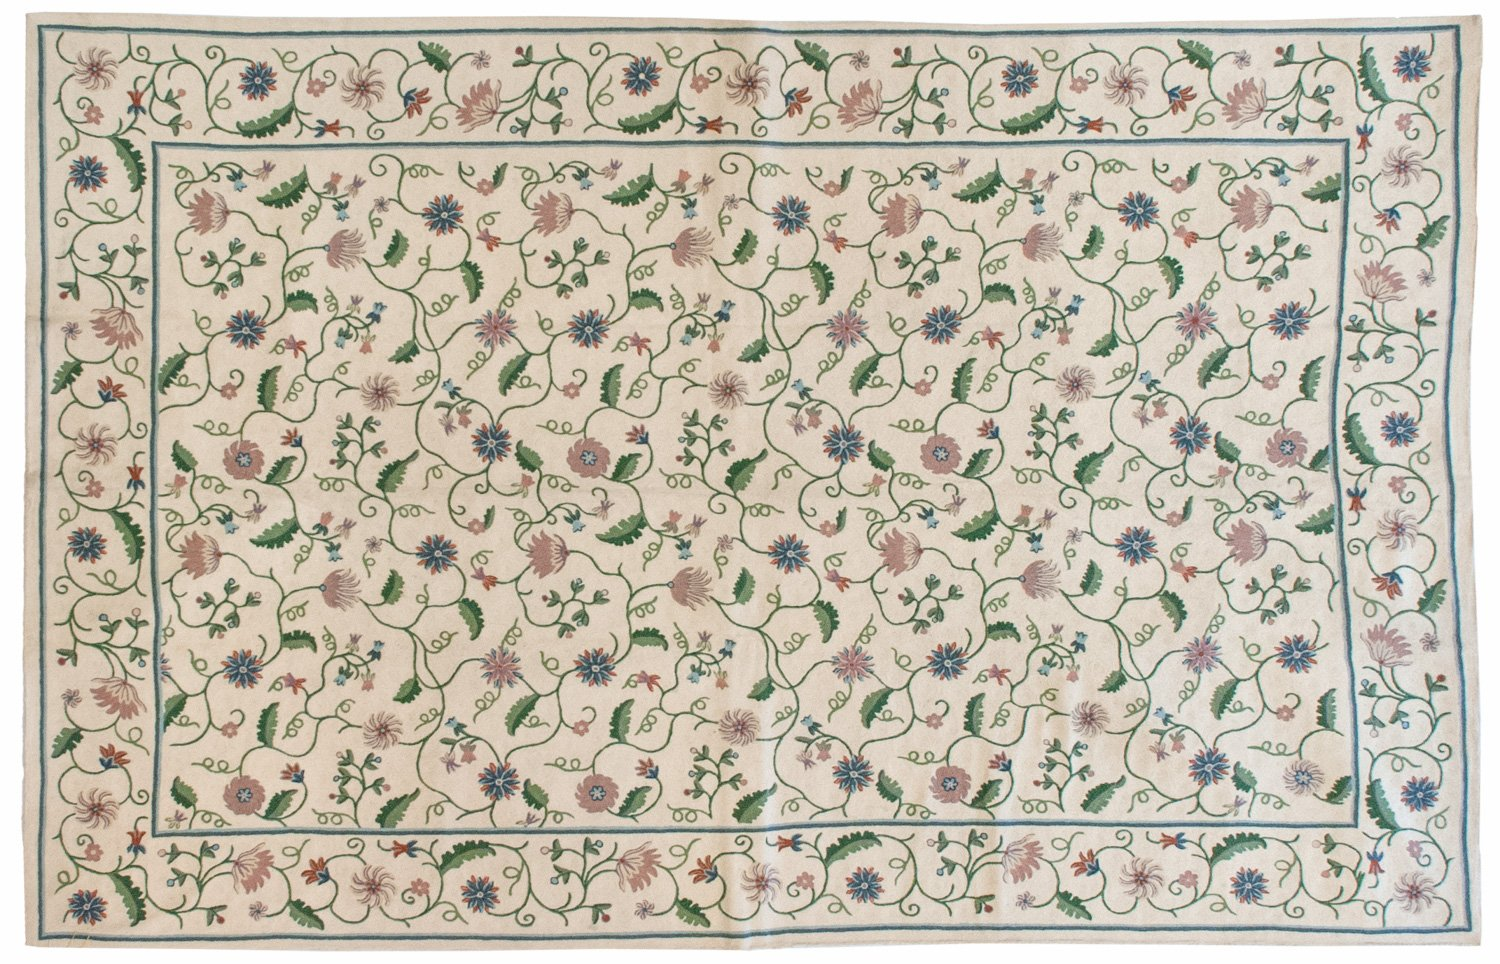 6x9 Vintage Crown Kashmir Chain Stitch Rug